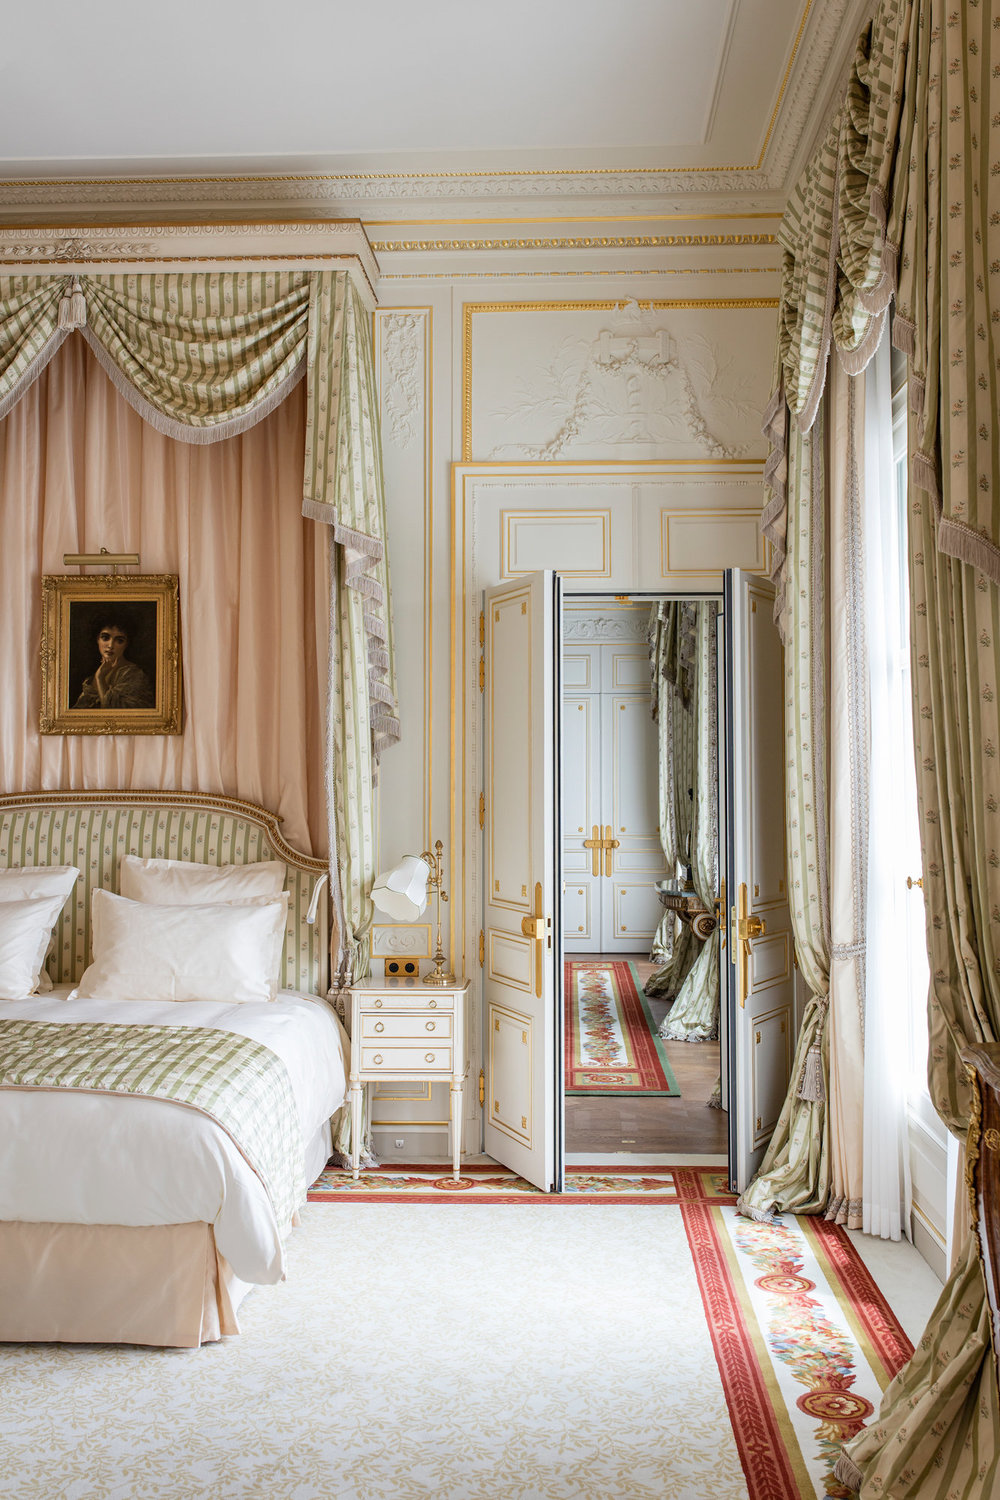 A very elegant canopy bed - I'm seeing variations on this theme alot recently